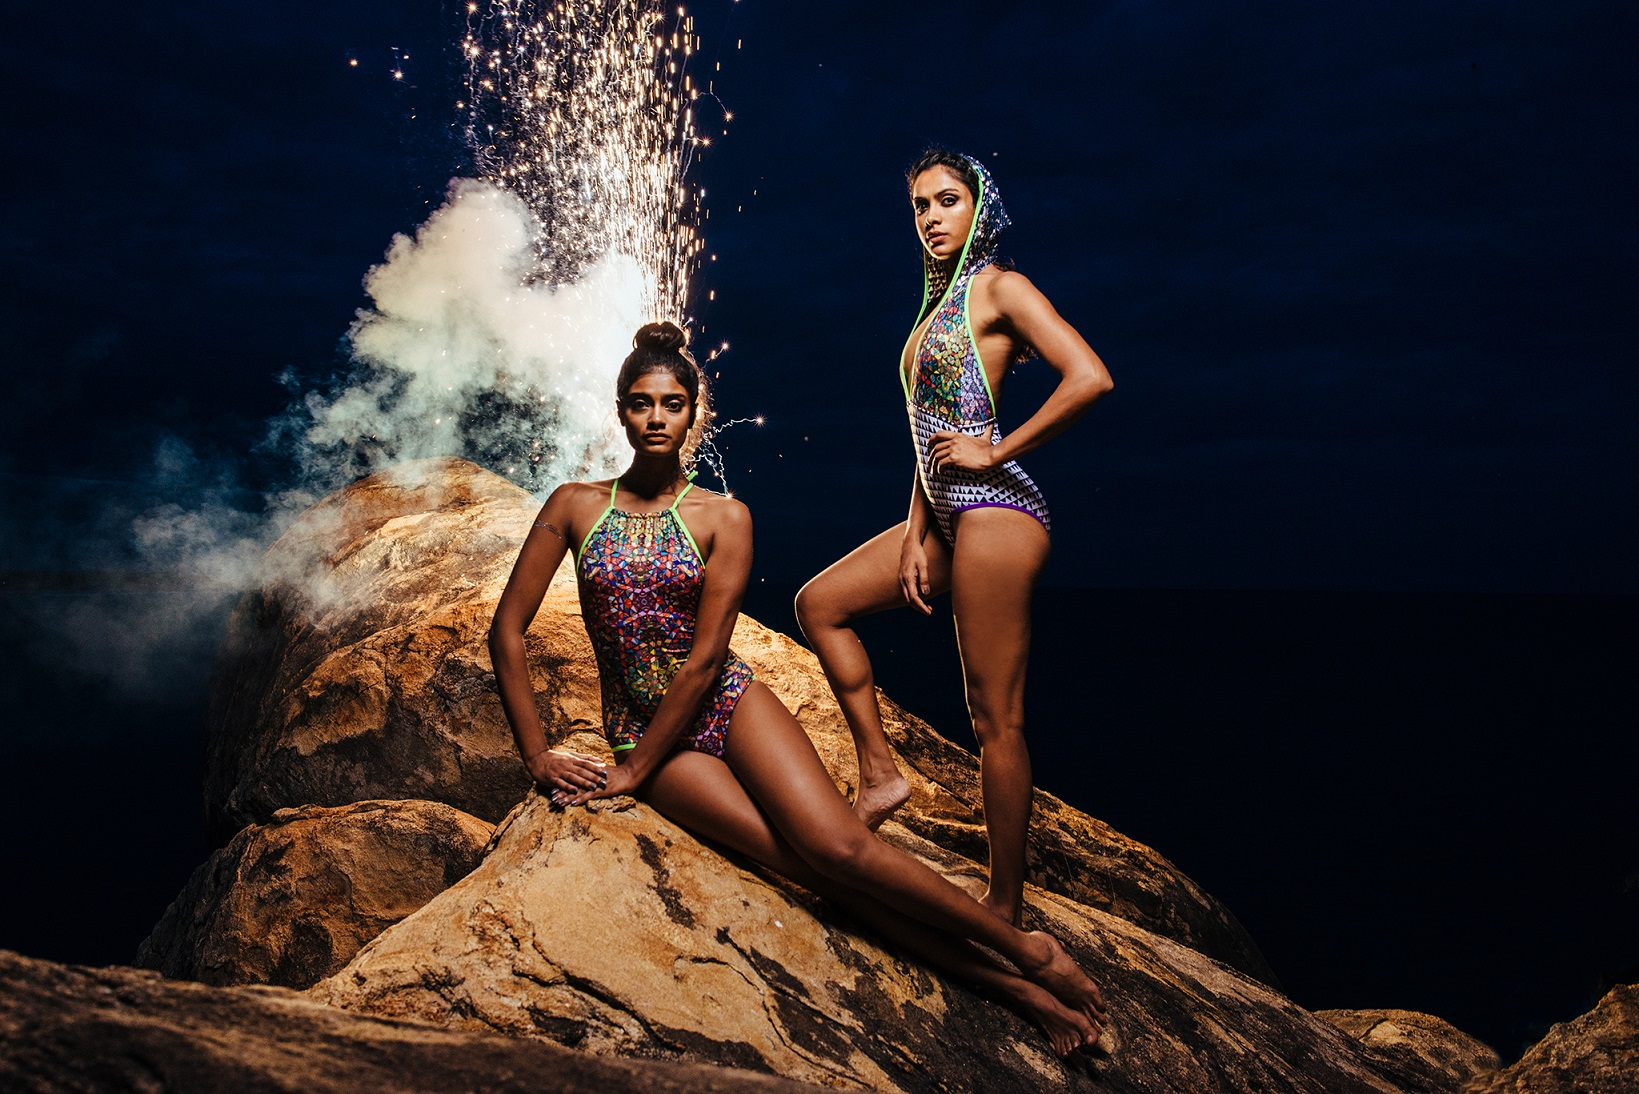 Models Archana Akil Kumar & Mariette Valsan for Rumpunch © Courtesy of You're My Favourite